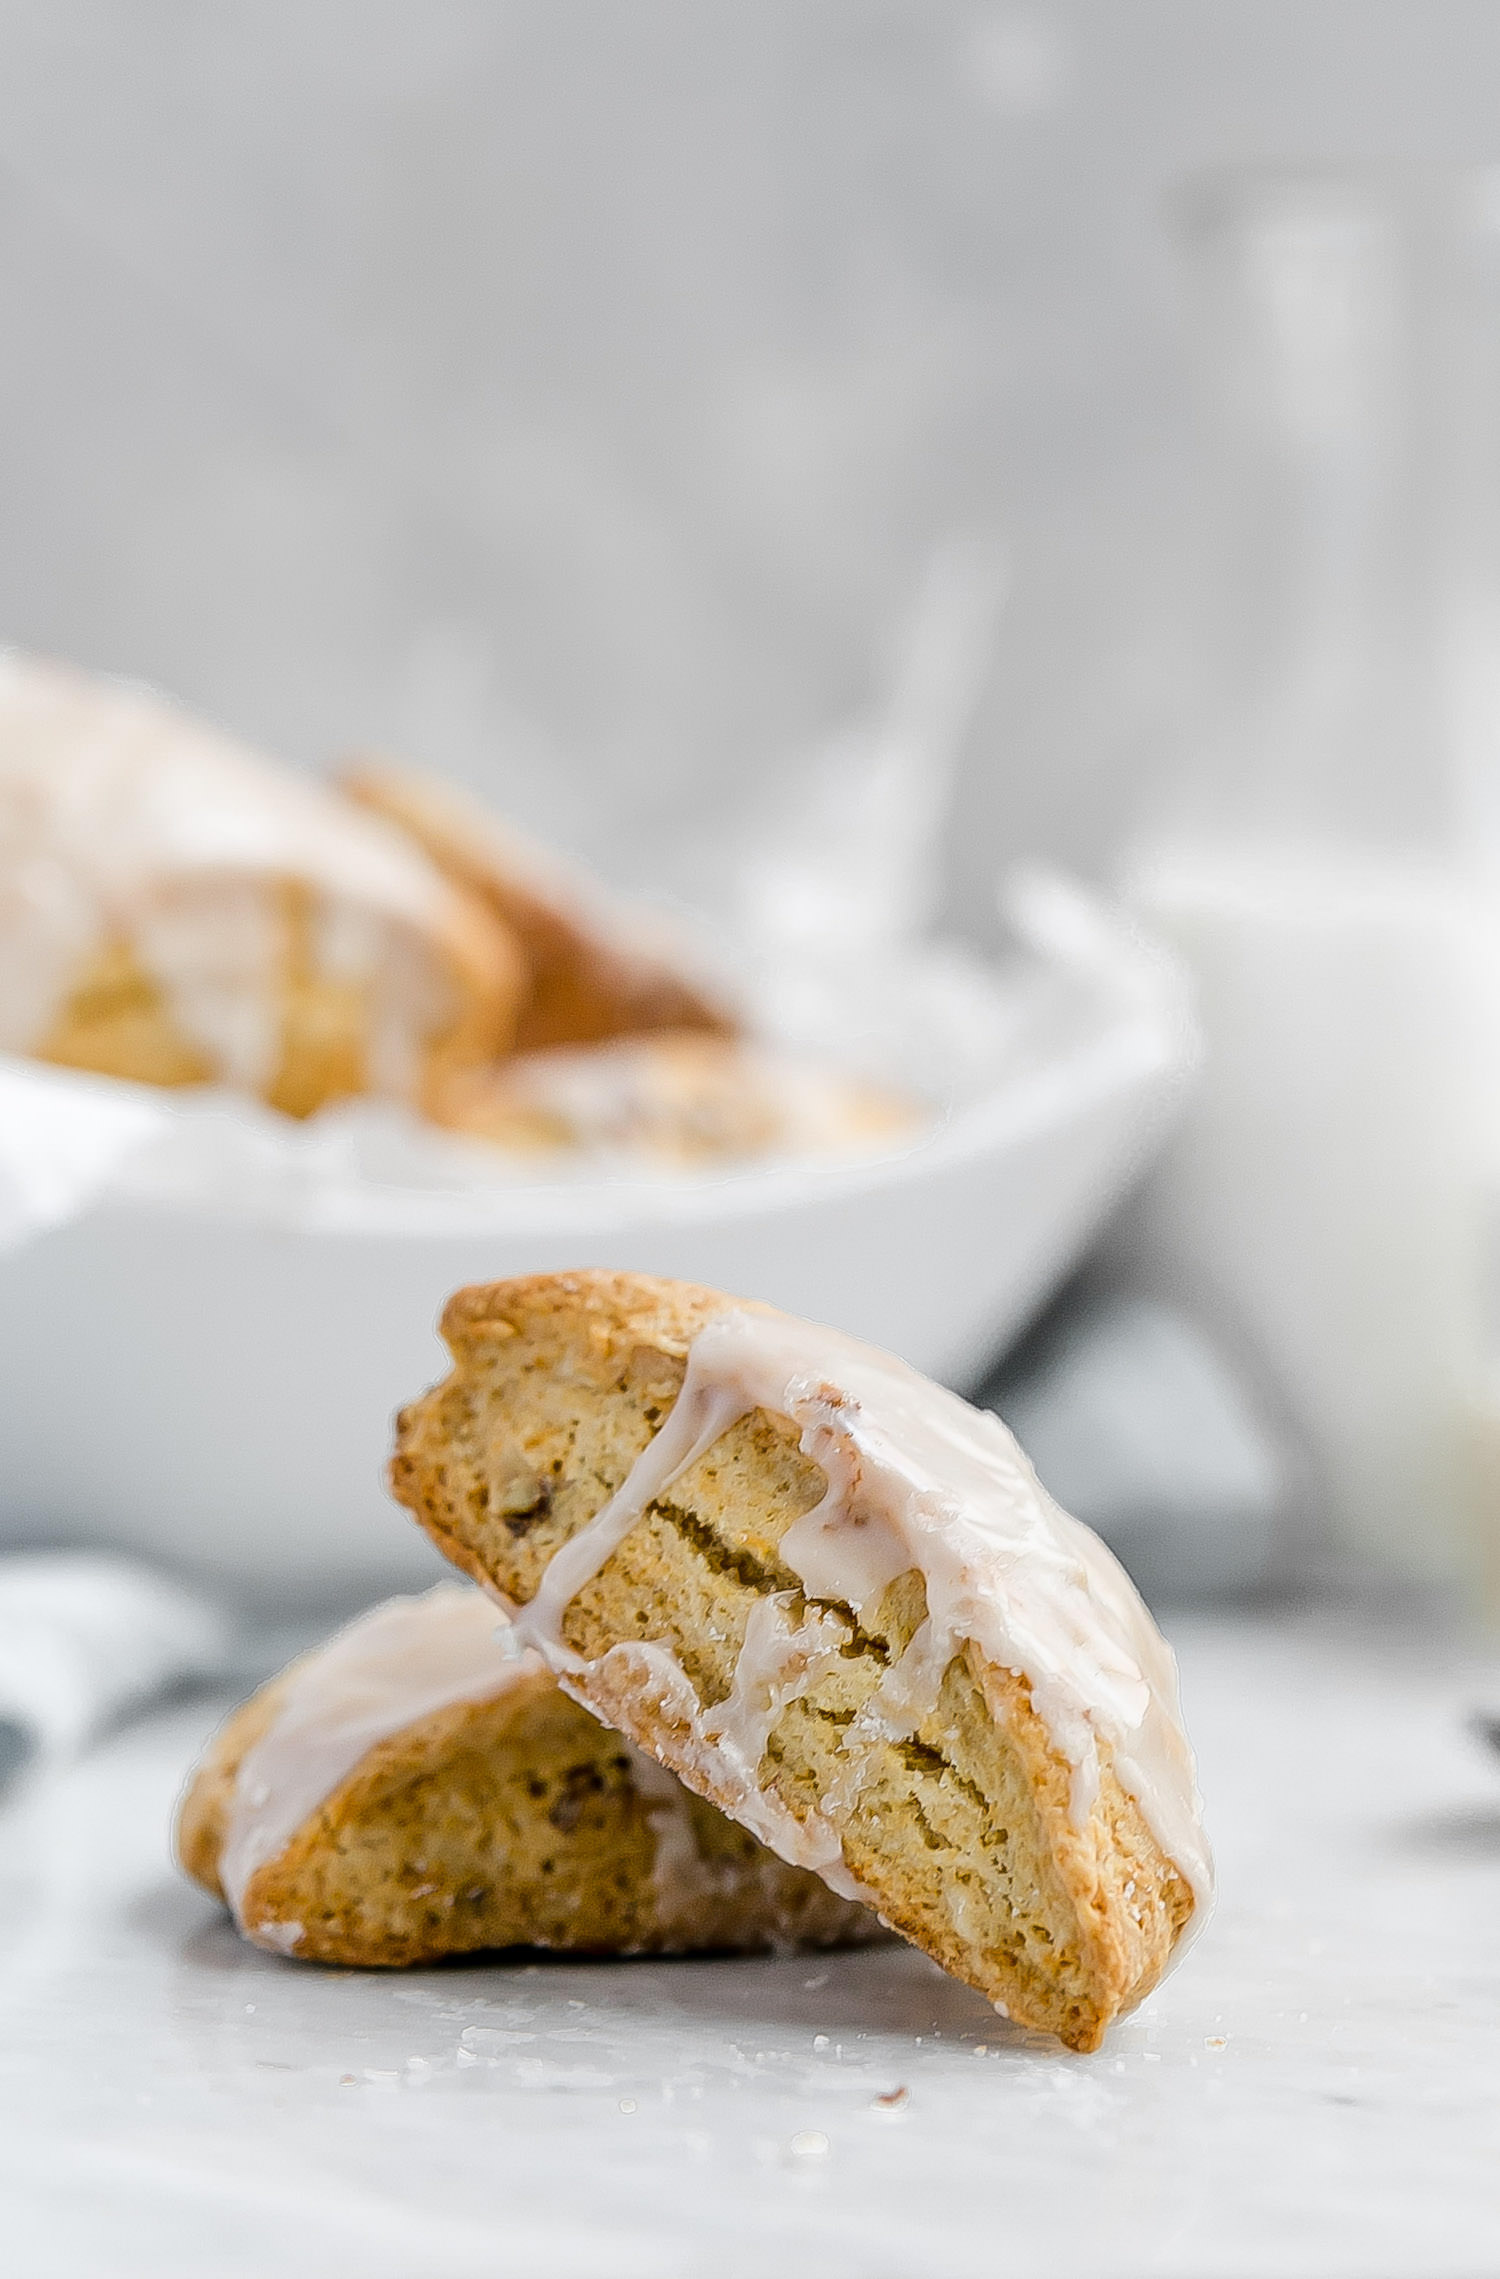 Early Grey Toasted Walnut Honey Scones: tender scones sweetened with honey, speckled with toasted walnuts, and topped with an earl grey glaze. | TrufflesandTrends.com